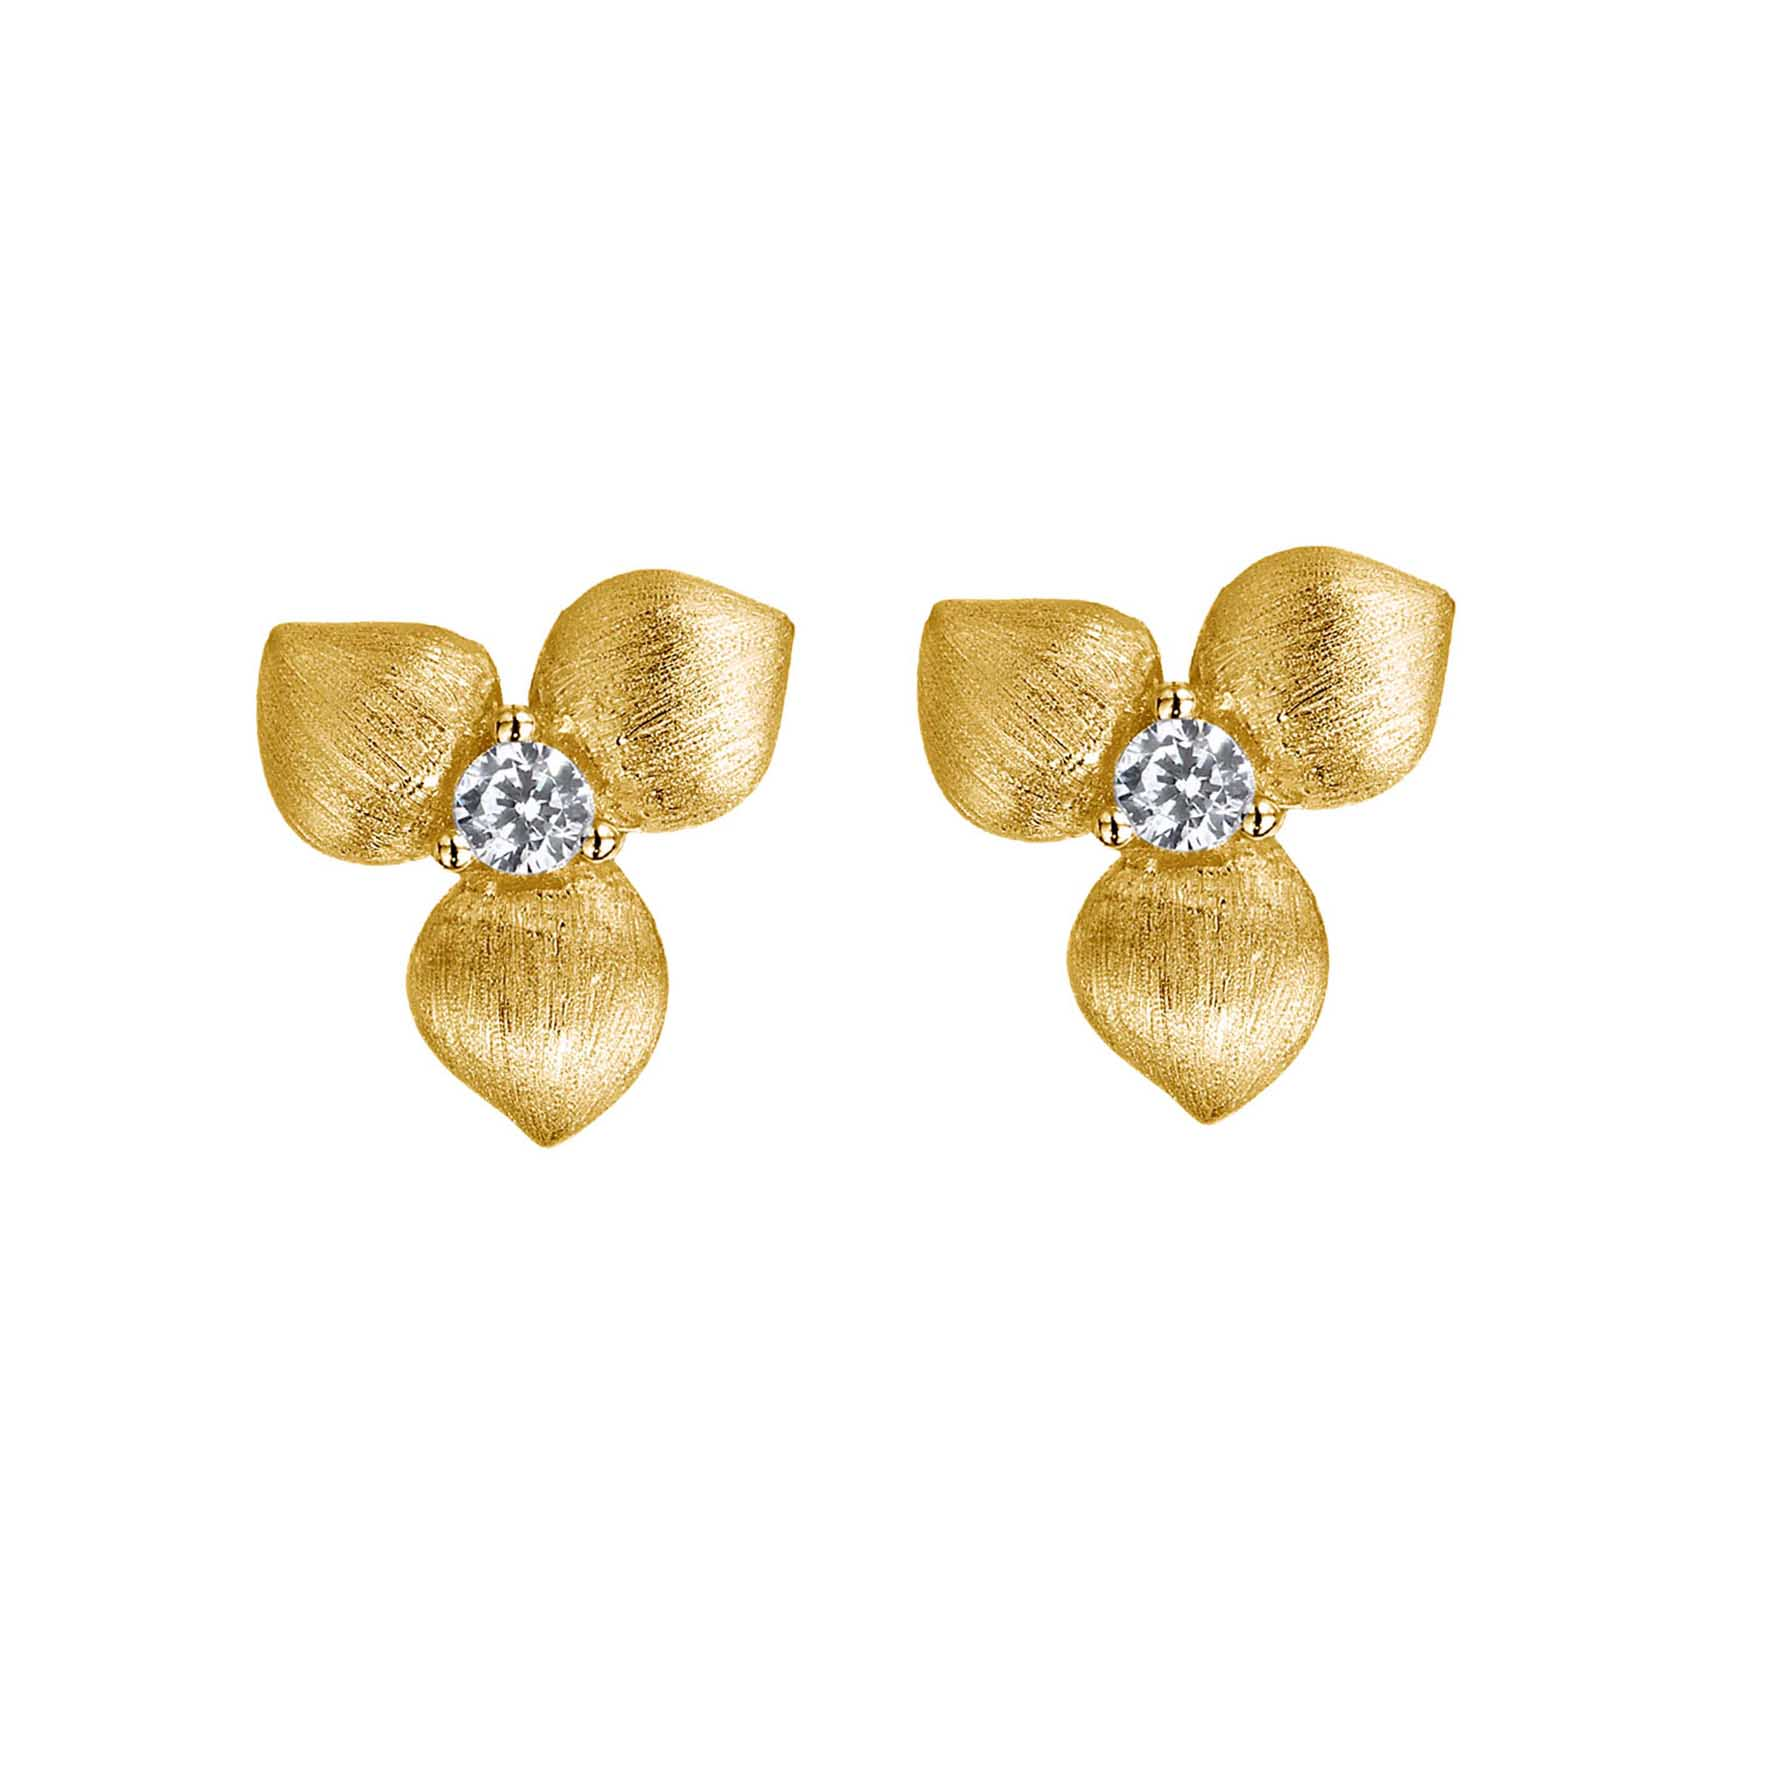 Desert Flowers stud earrings, yellow, gold-plated sterling silver